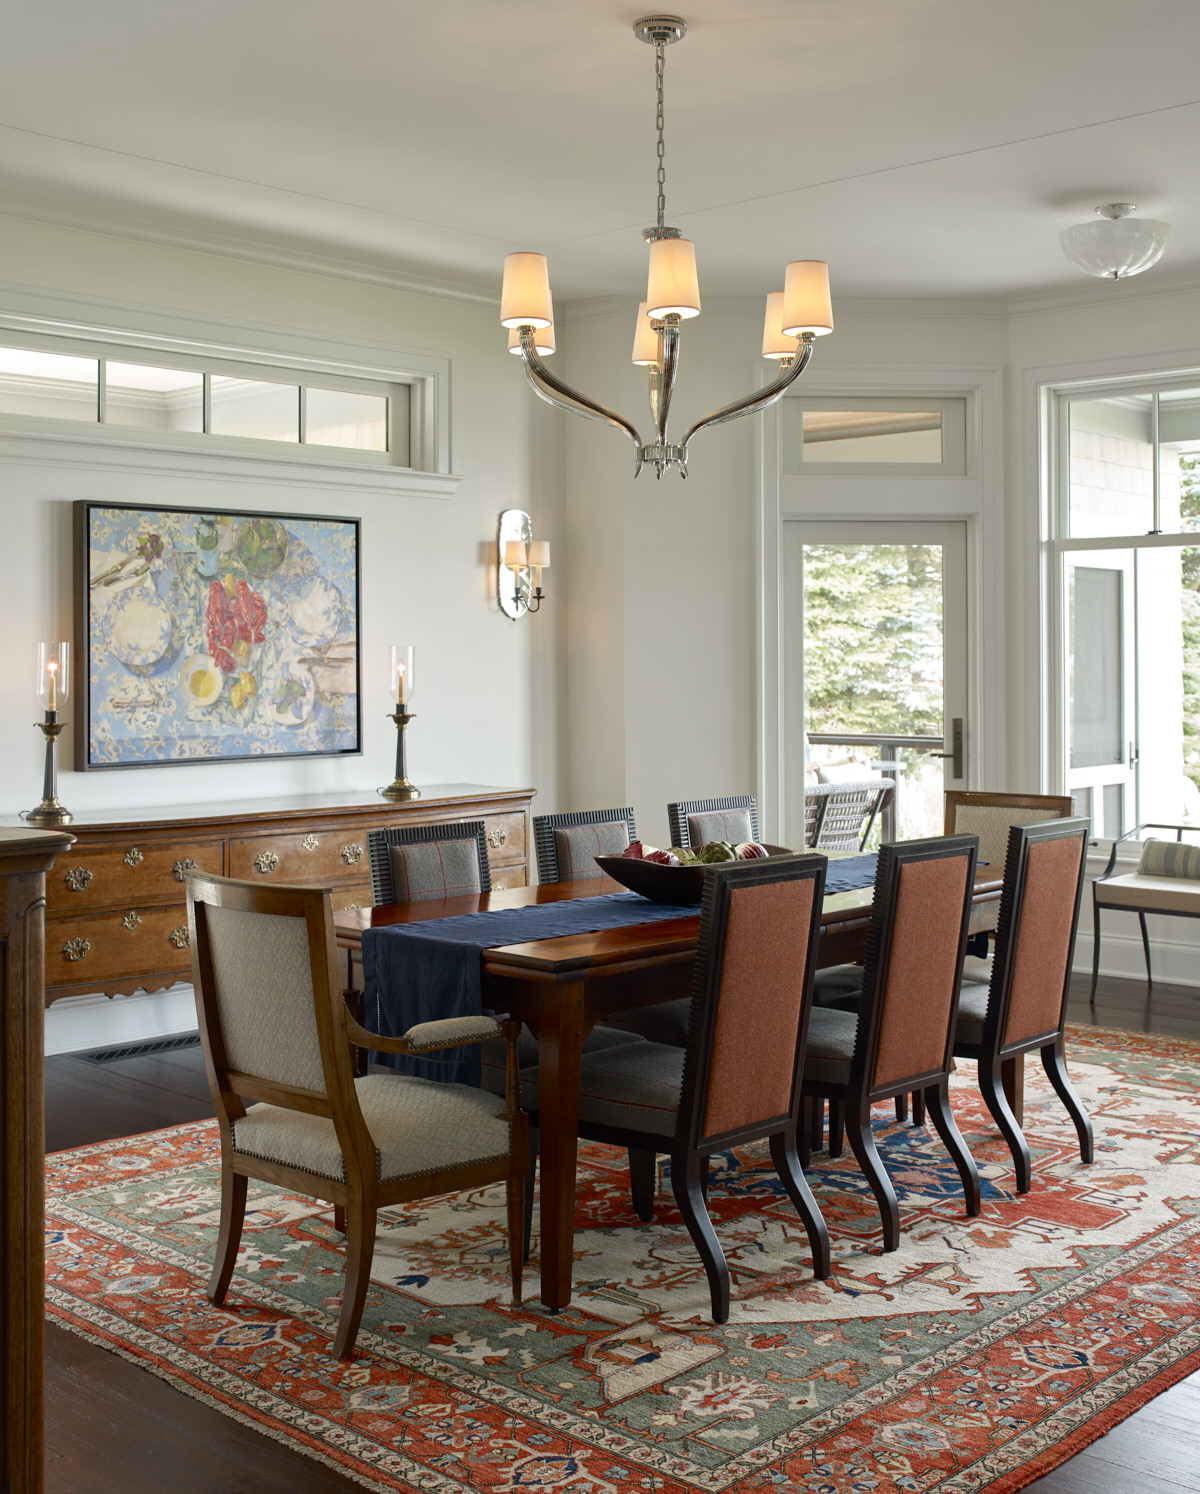 Formal dining area with natural light and unique lighting.